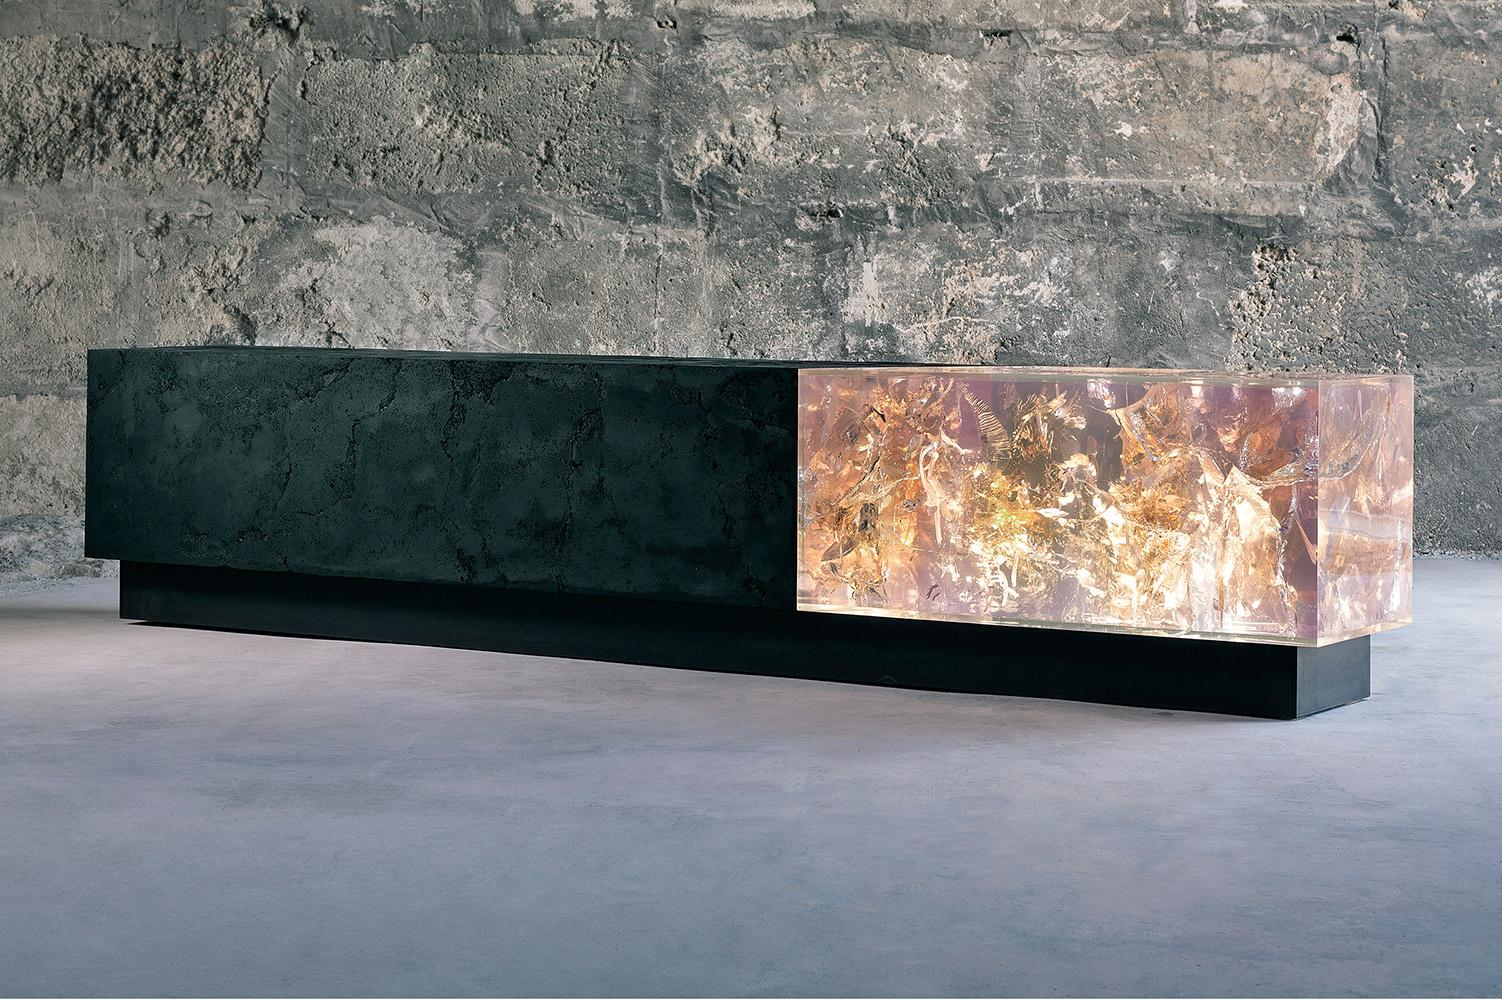 Counterpart II by Tom Price - coal & resin sculpture and bench